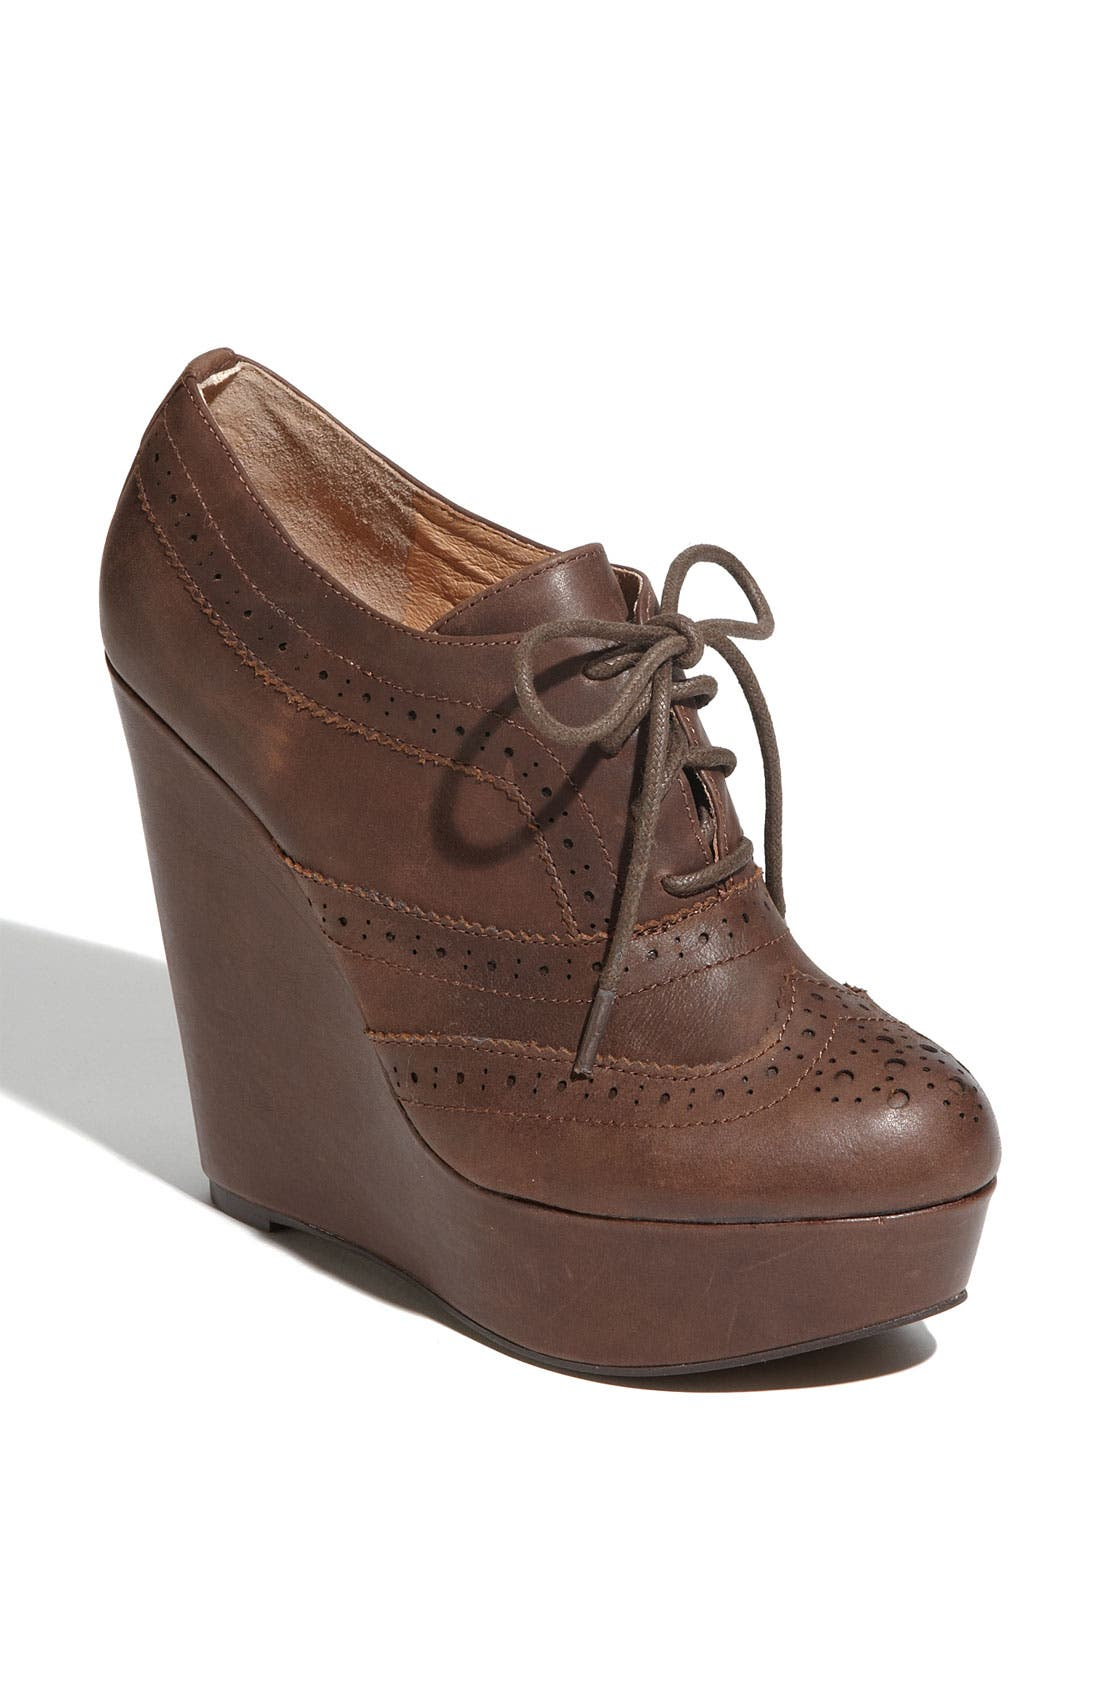 Alternate Image 1 Selected - ALDO 'Horvath' Oxford Wedge